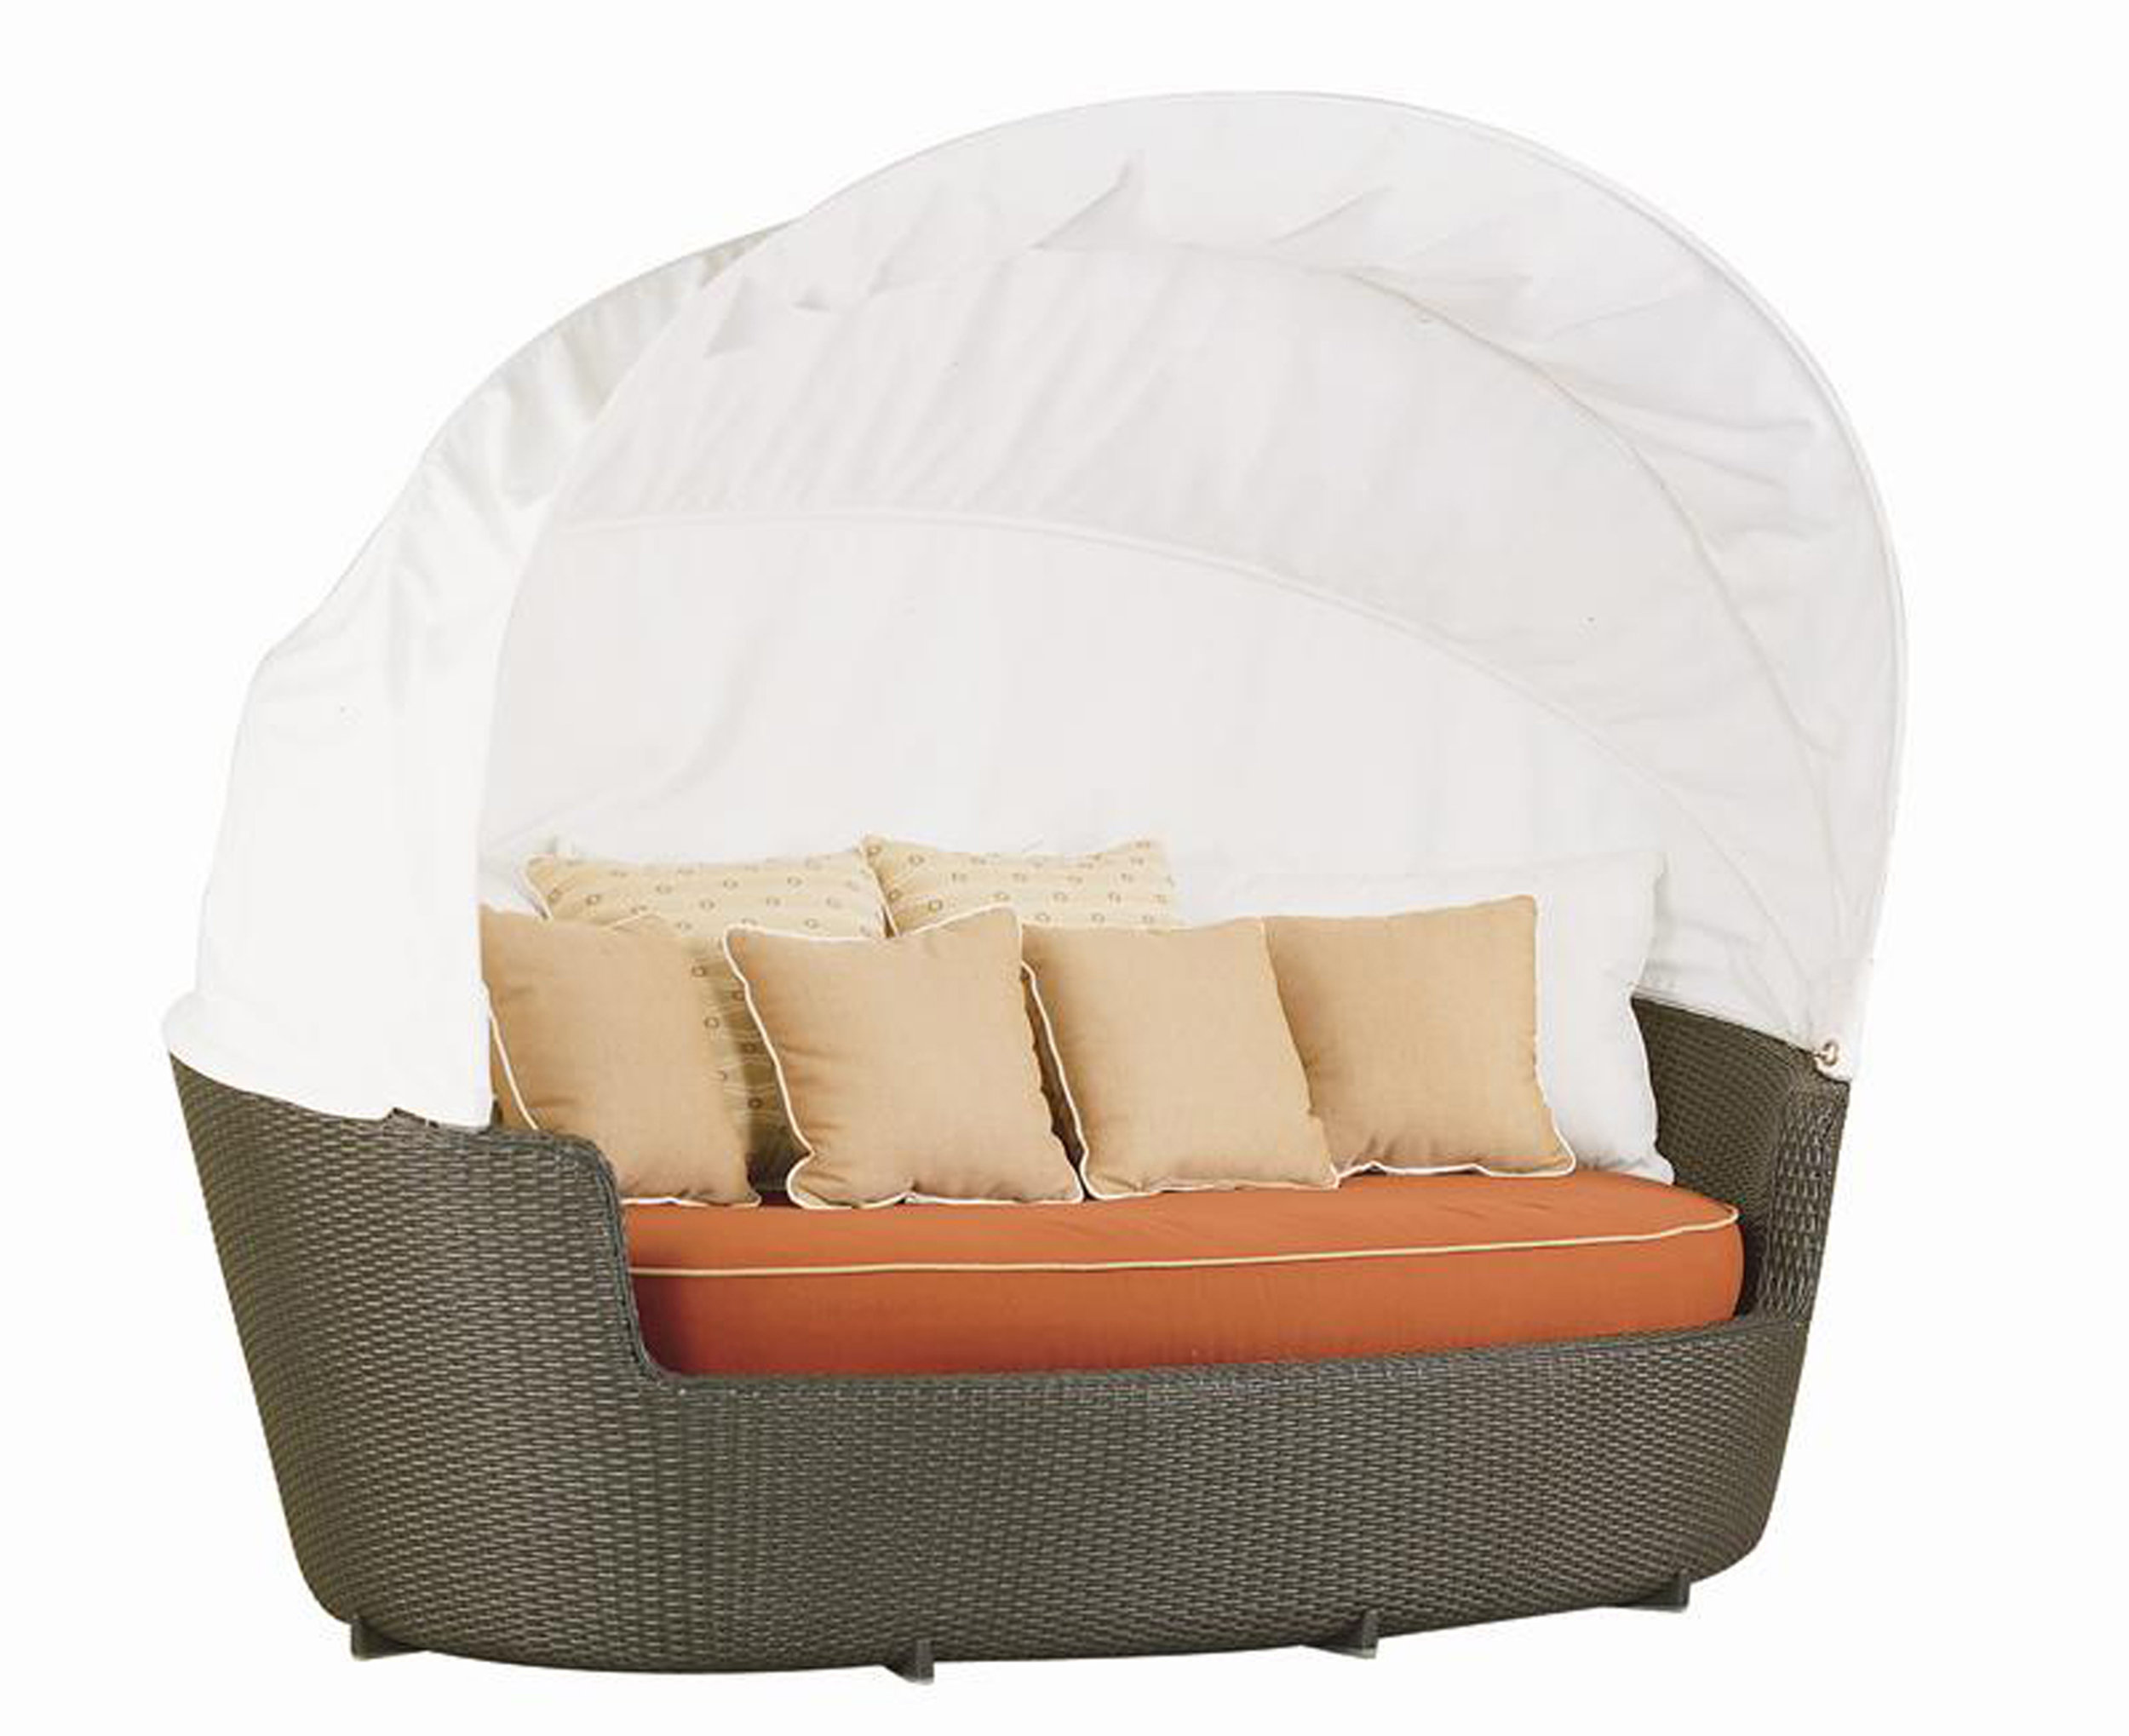 "970168 Monterey Siesta With Optional Tractable Canopy ( 970167 - Canopy Only )   91"" x 54.5"" x 31"""